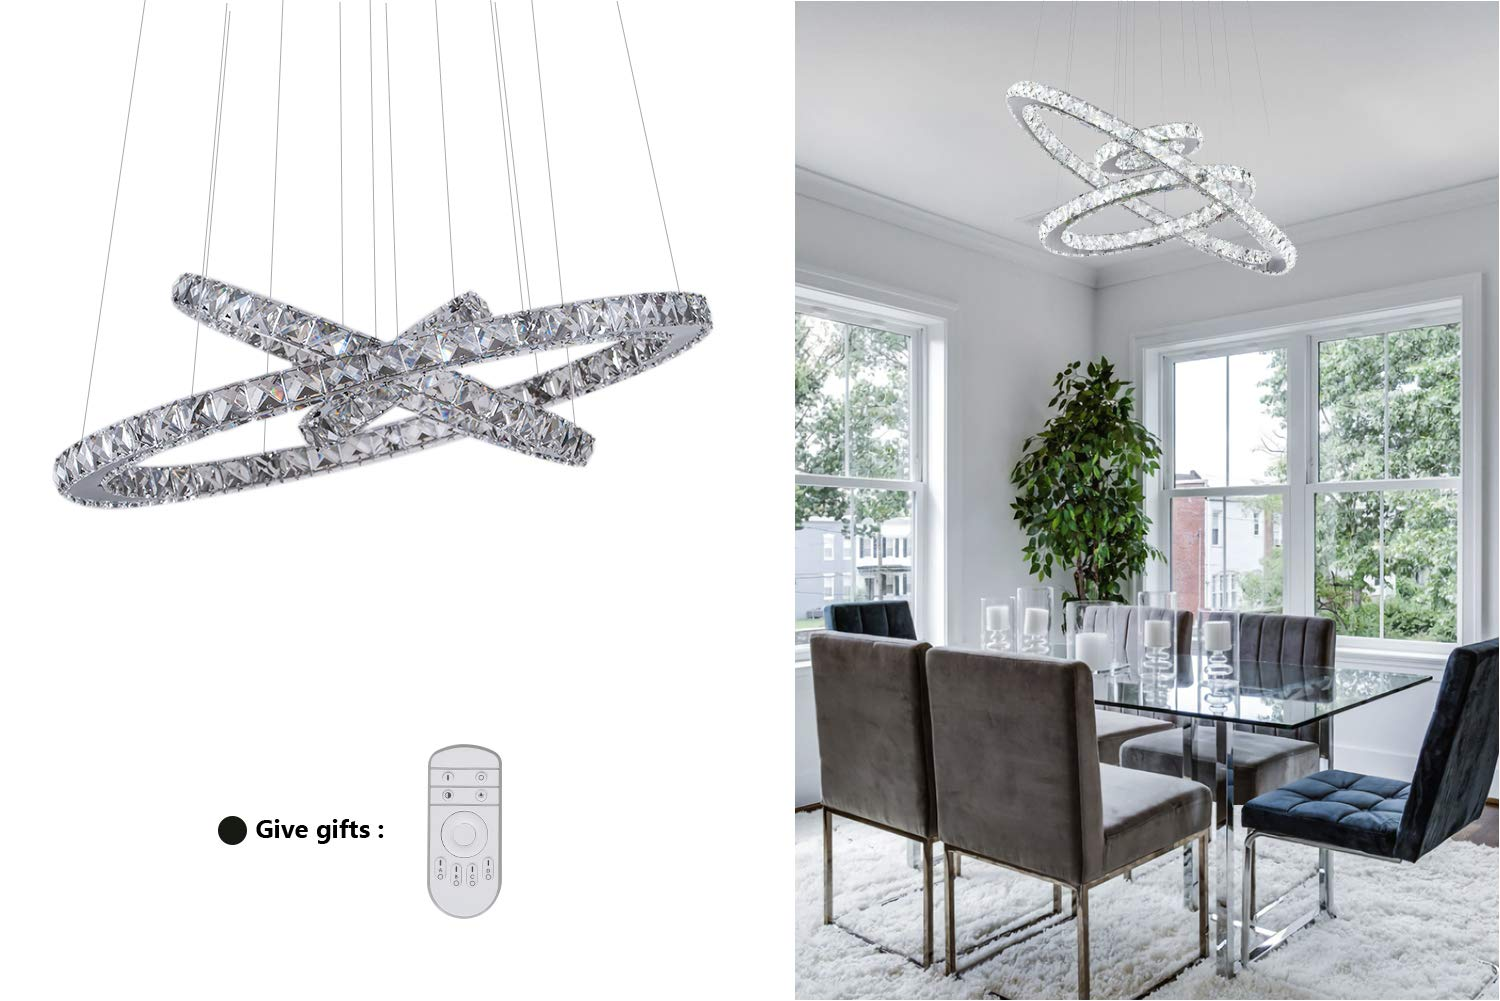 KAI Crystal Chandelier Island Pendant Light Dimmable Temperature Adjustable LED Contemporary Lamp with 72W 8640LM Adjustable Height 3 Rings Modern Flush Mount Ceiling Lighting for Dining Room,1 Pack